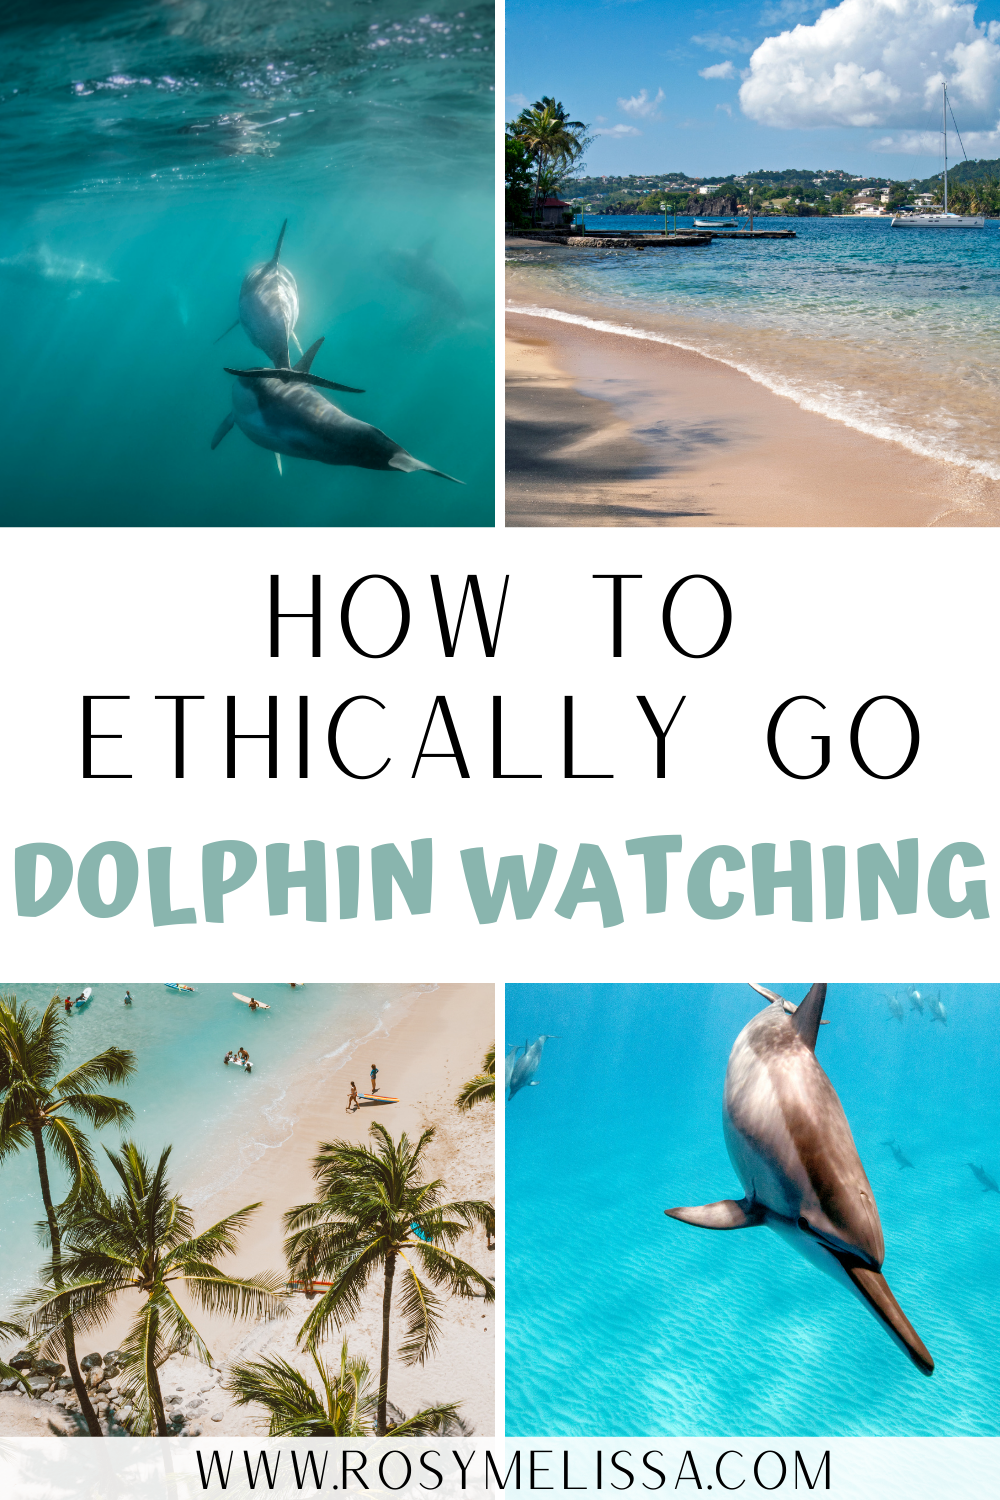 how to ethically go dolphin watching, tips to responsible spot dolphins